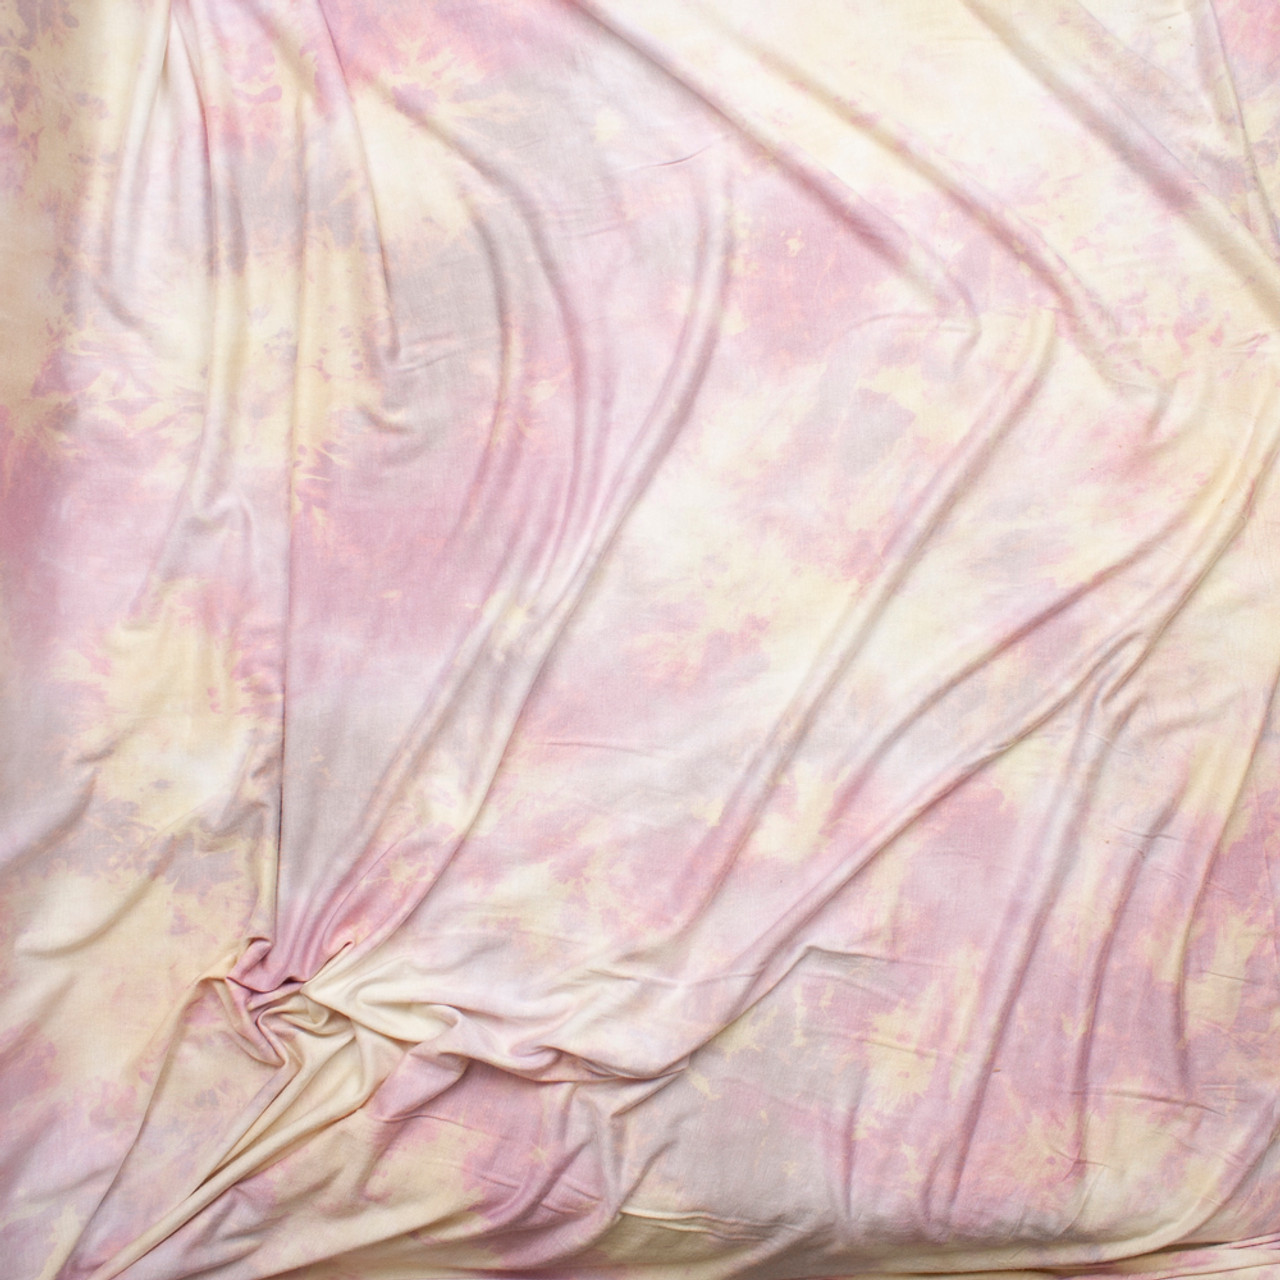 b7ce5872719 ... Pastel Pink, Yellow, and Lavender Tie Dye Stretch Rayon Jersey Fabric  By The Yard